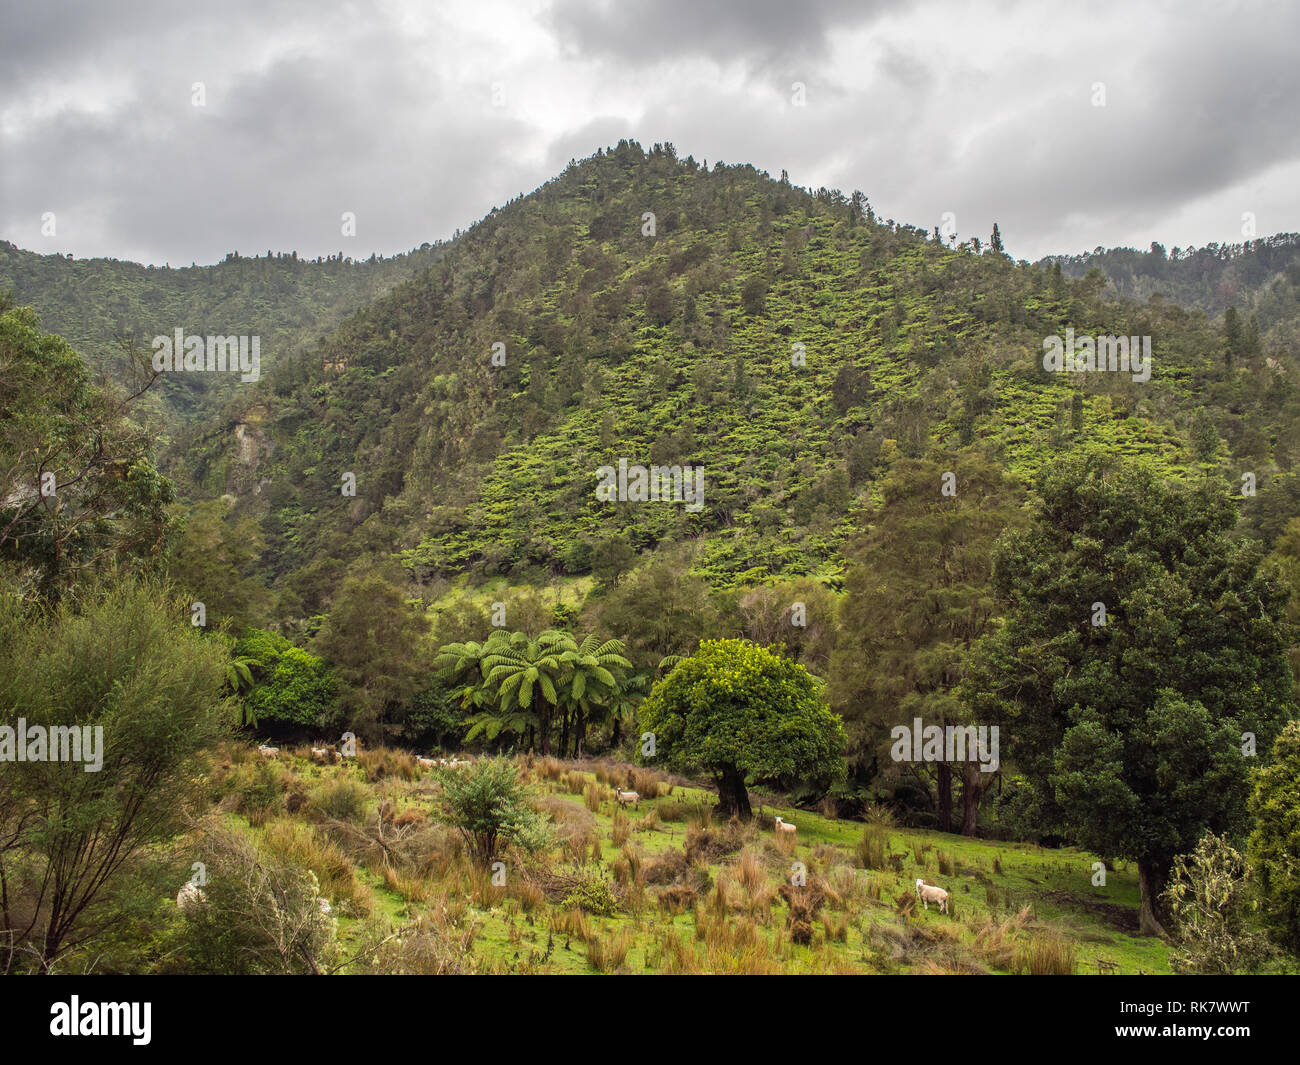 Sheep grazing on rough pasture, abandoned farm land, regenerating forest hills, tree ferns and kanuka, Ahuahu Valley, Whanganui River, New Zealand - Stock Image